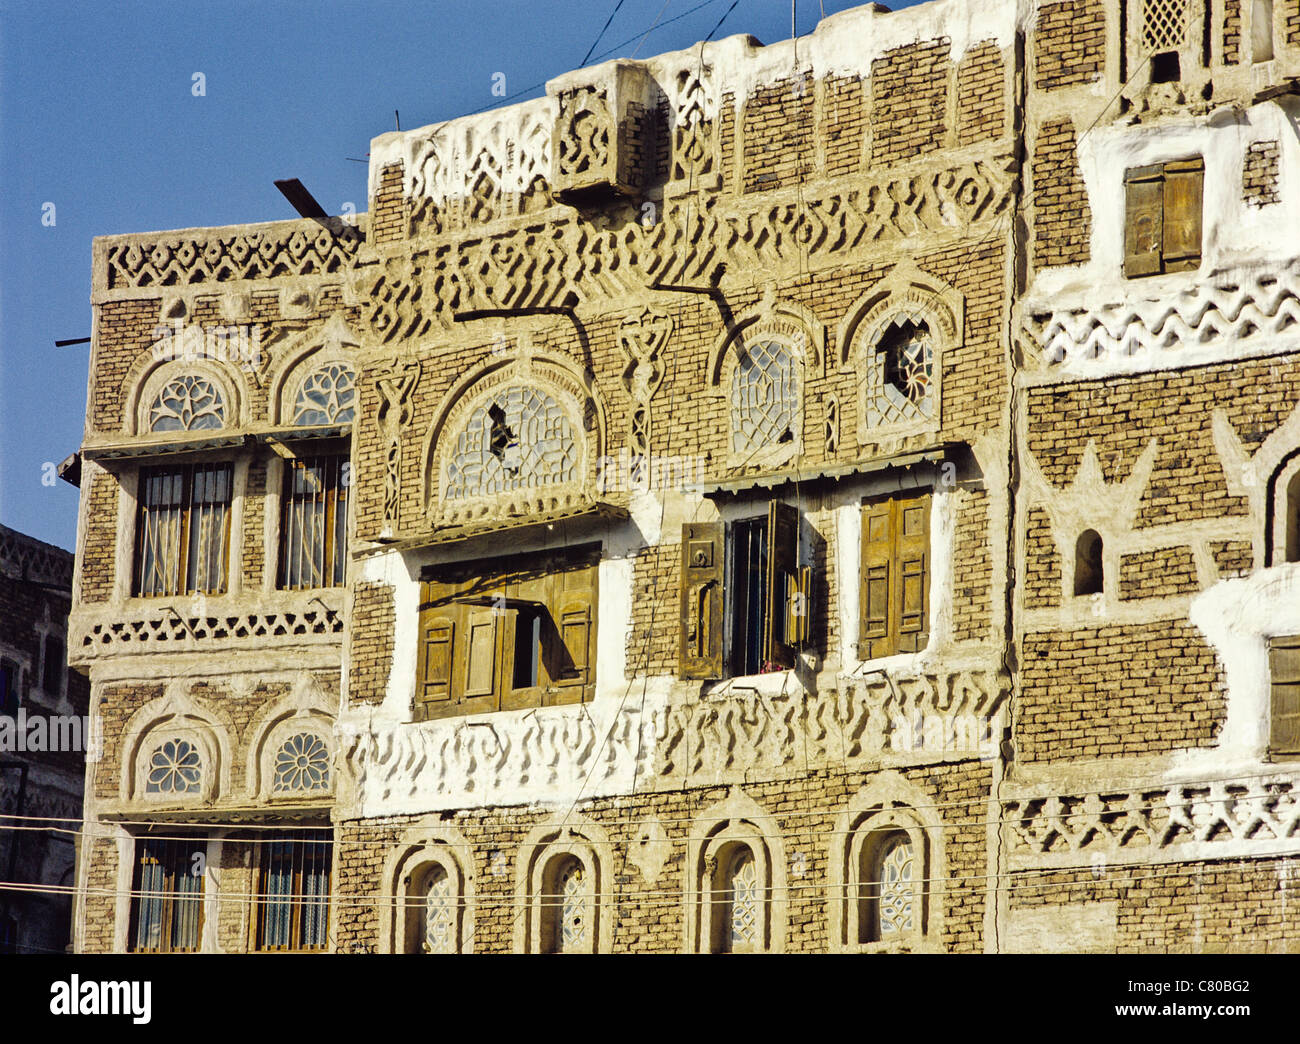 Architectural detail showing tracery windows of a multistory dwelling in the Old City of Sana'a, Yemen Stock Photo